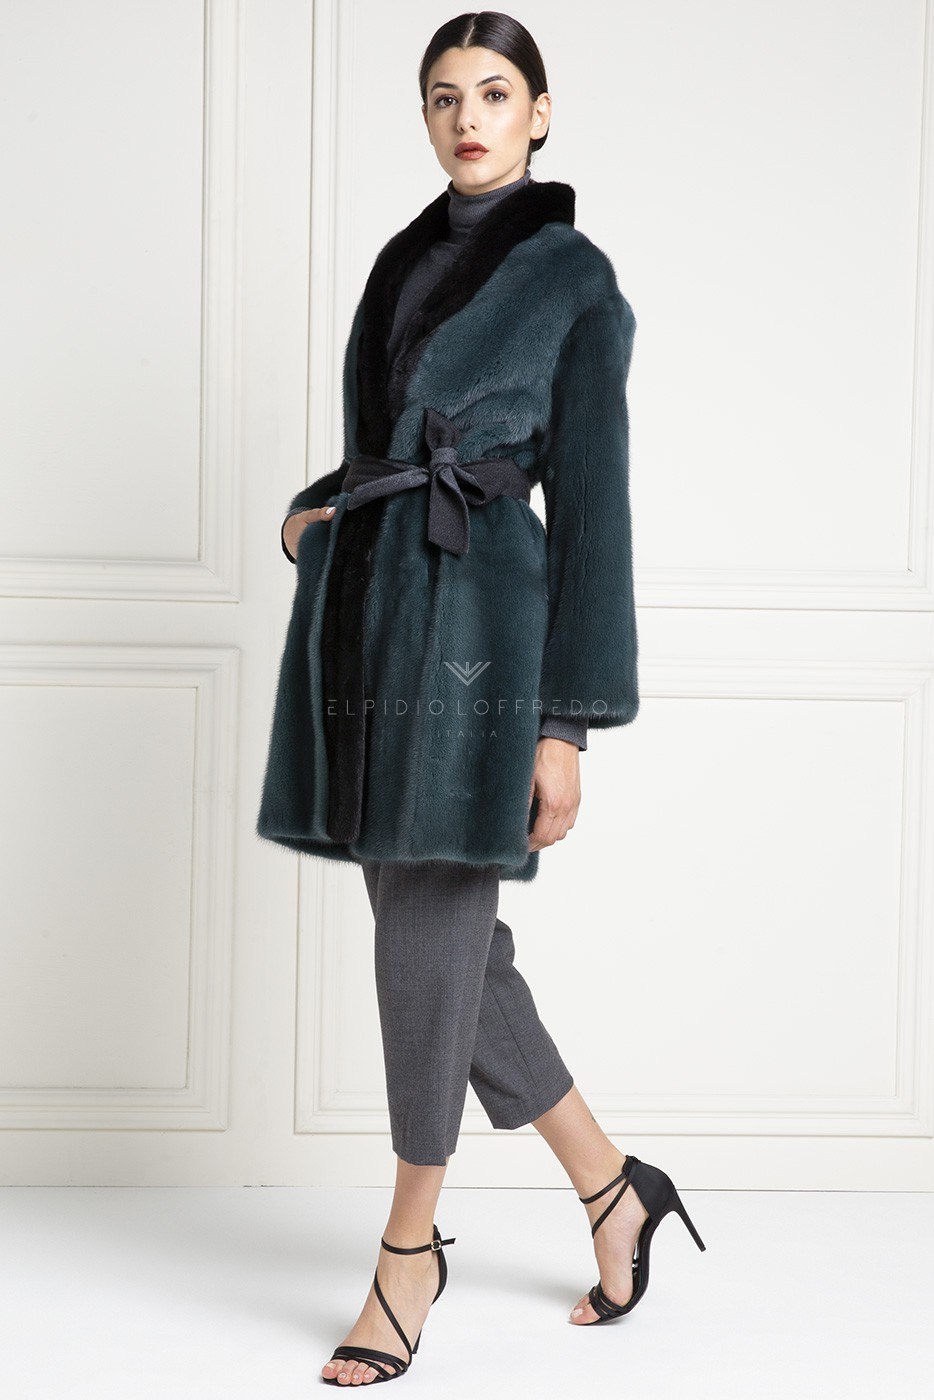 Green Mink Coat - Length 90 cm